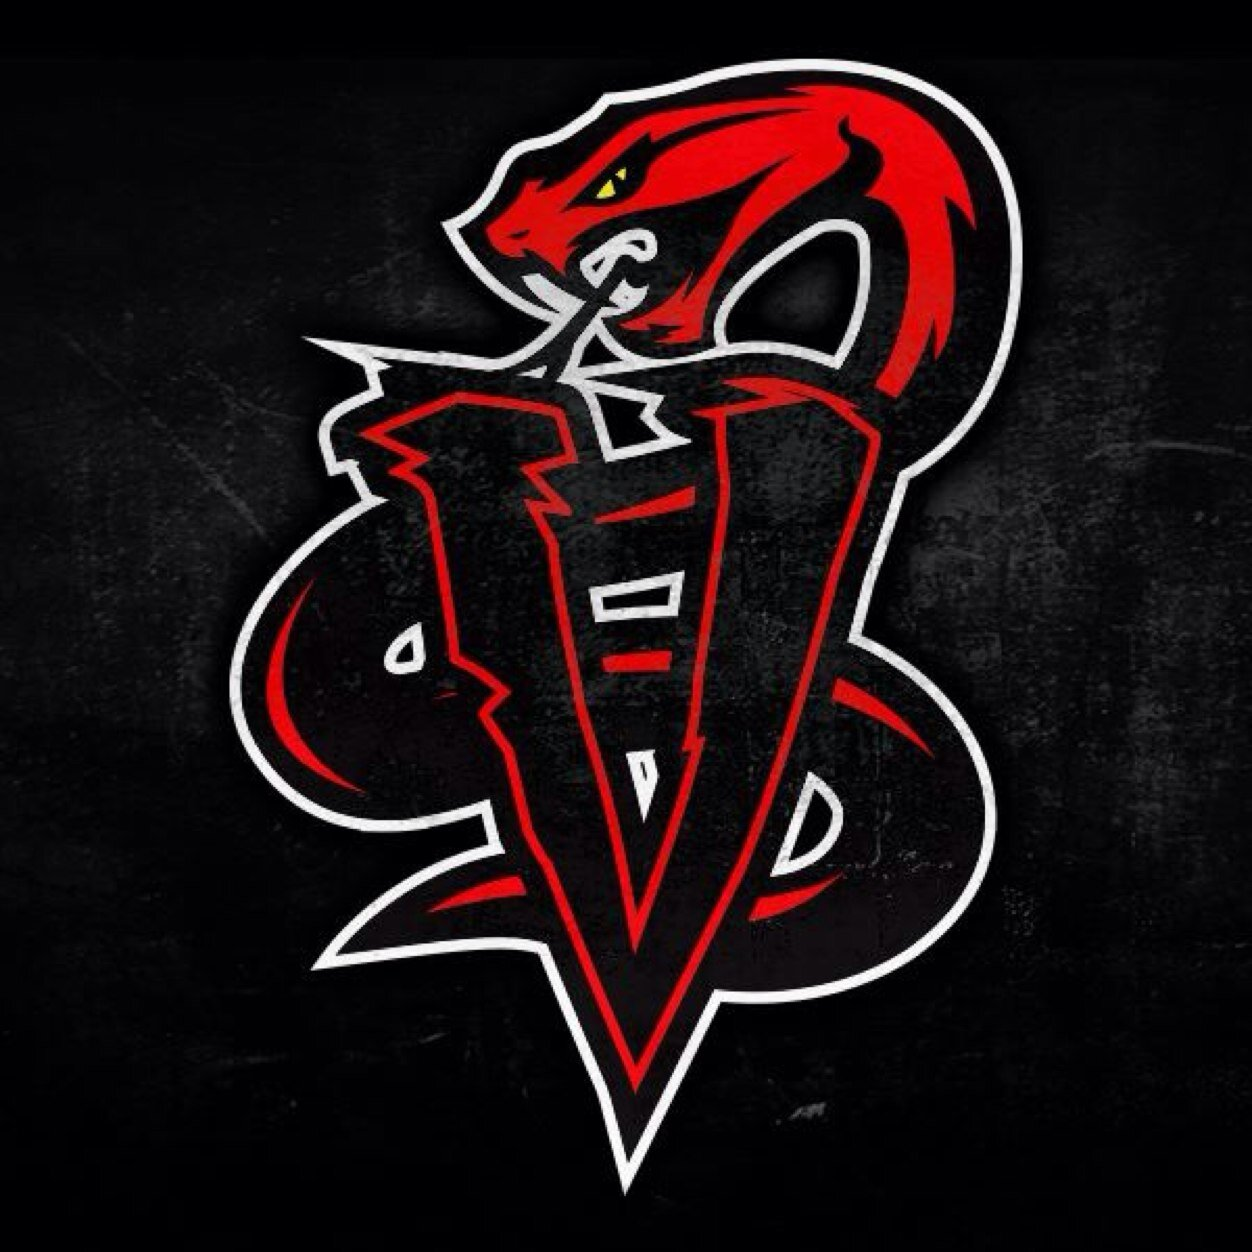 Red viper snake logo - photo#11